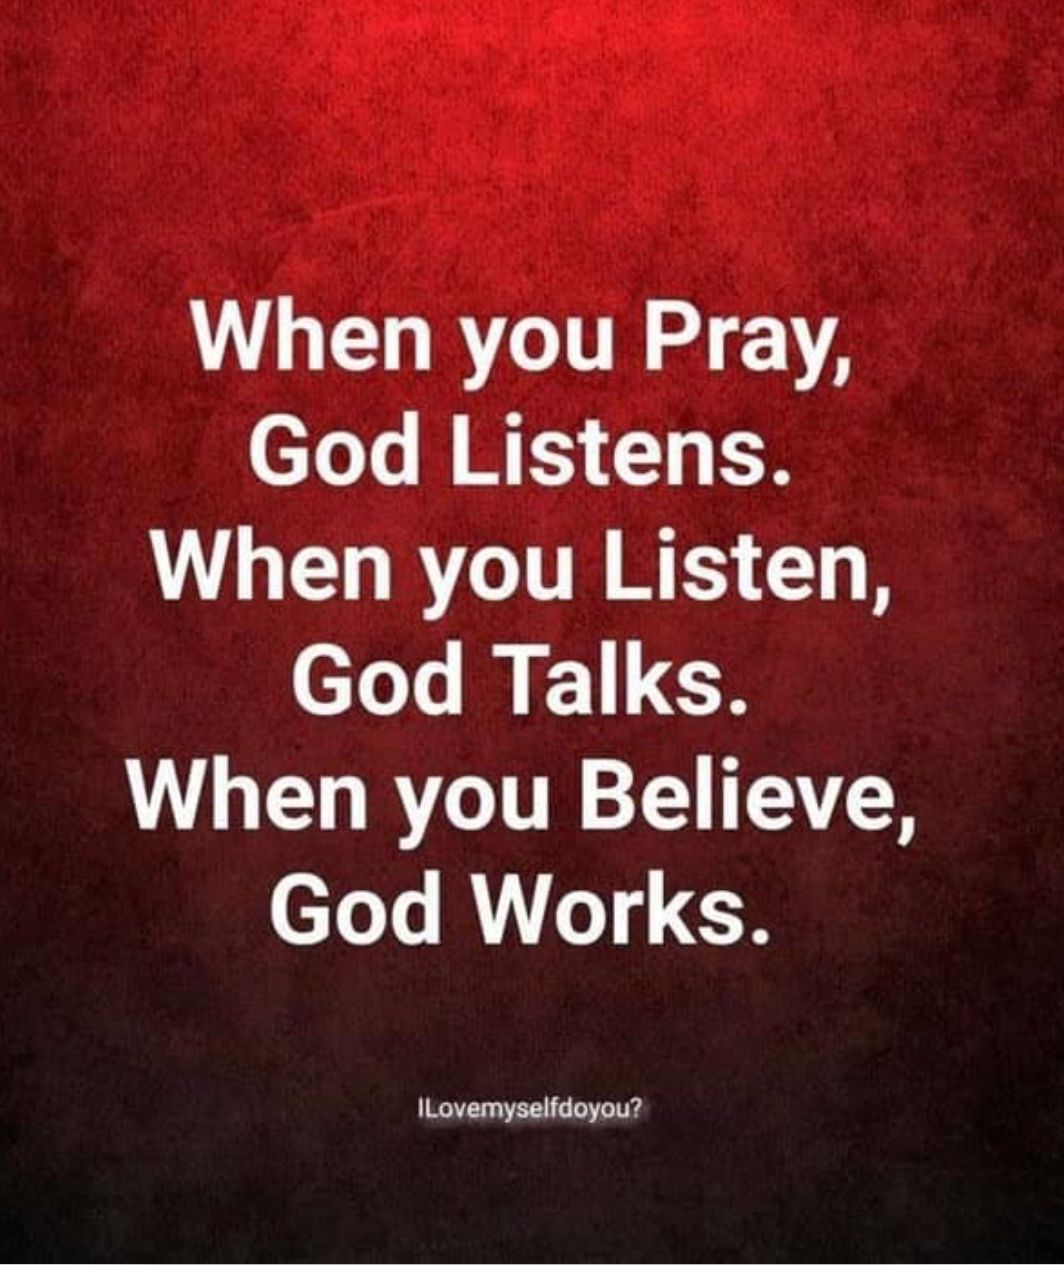 Pin By Diana Brent Ellis On Quotes And Phrases To Live By In 2020 Phrase Quotes Pray